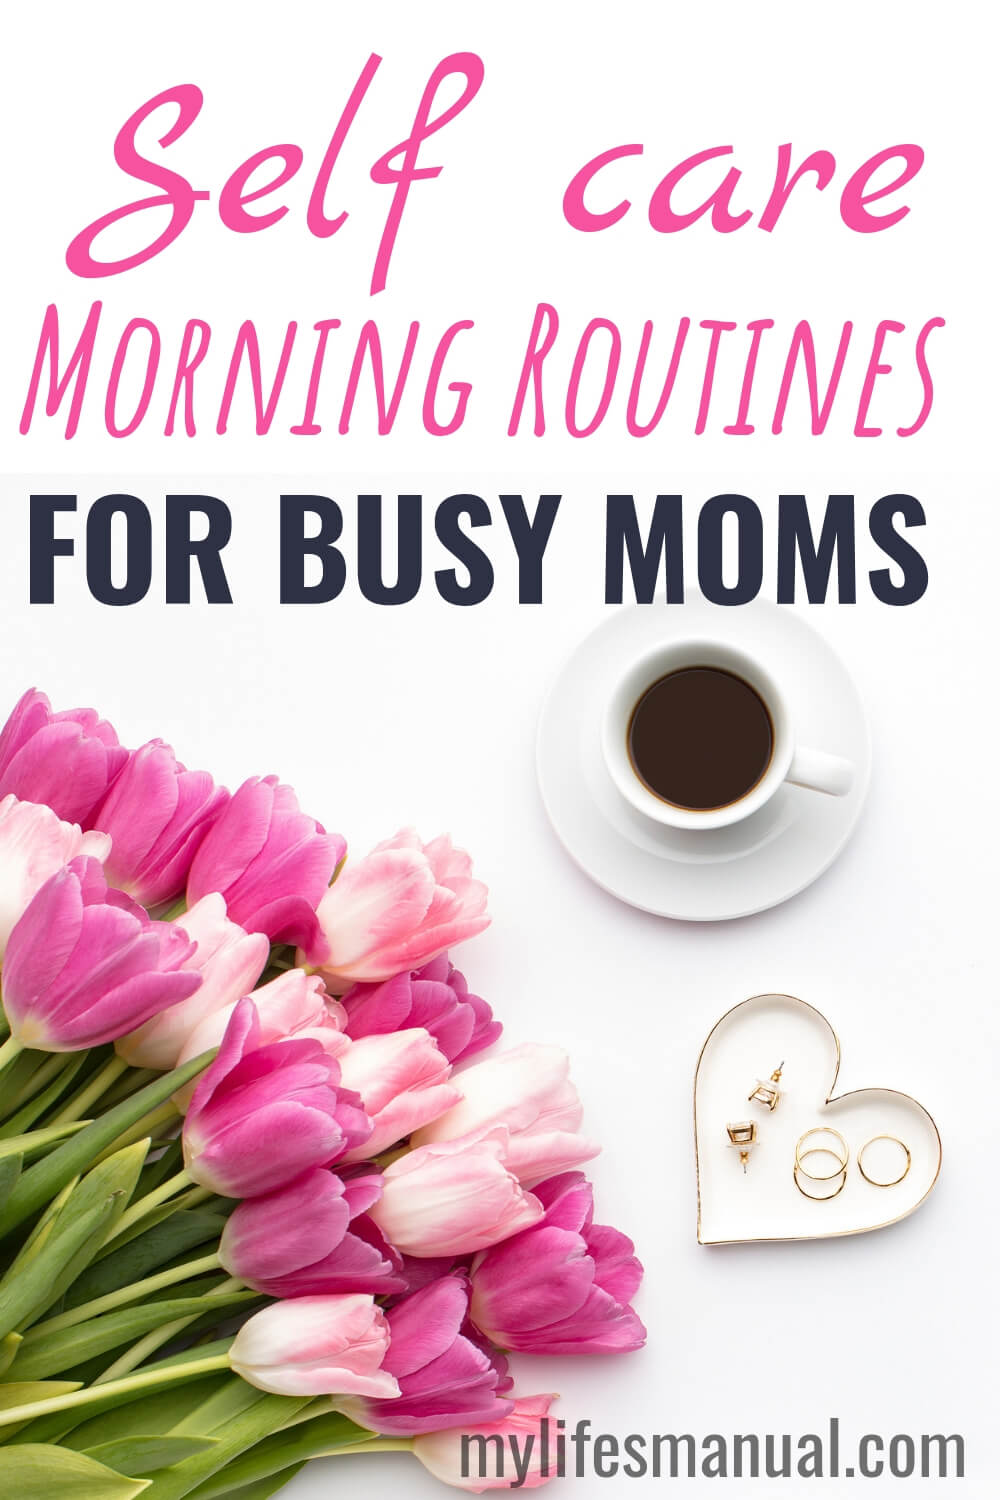 10 Self Care Morning Routines For Busy Moms